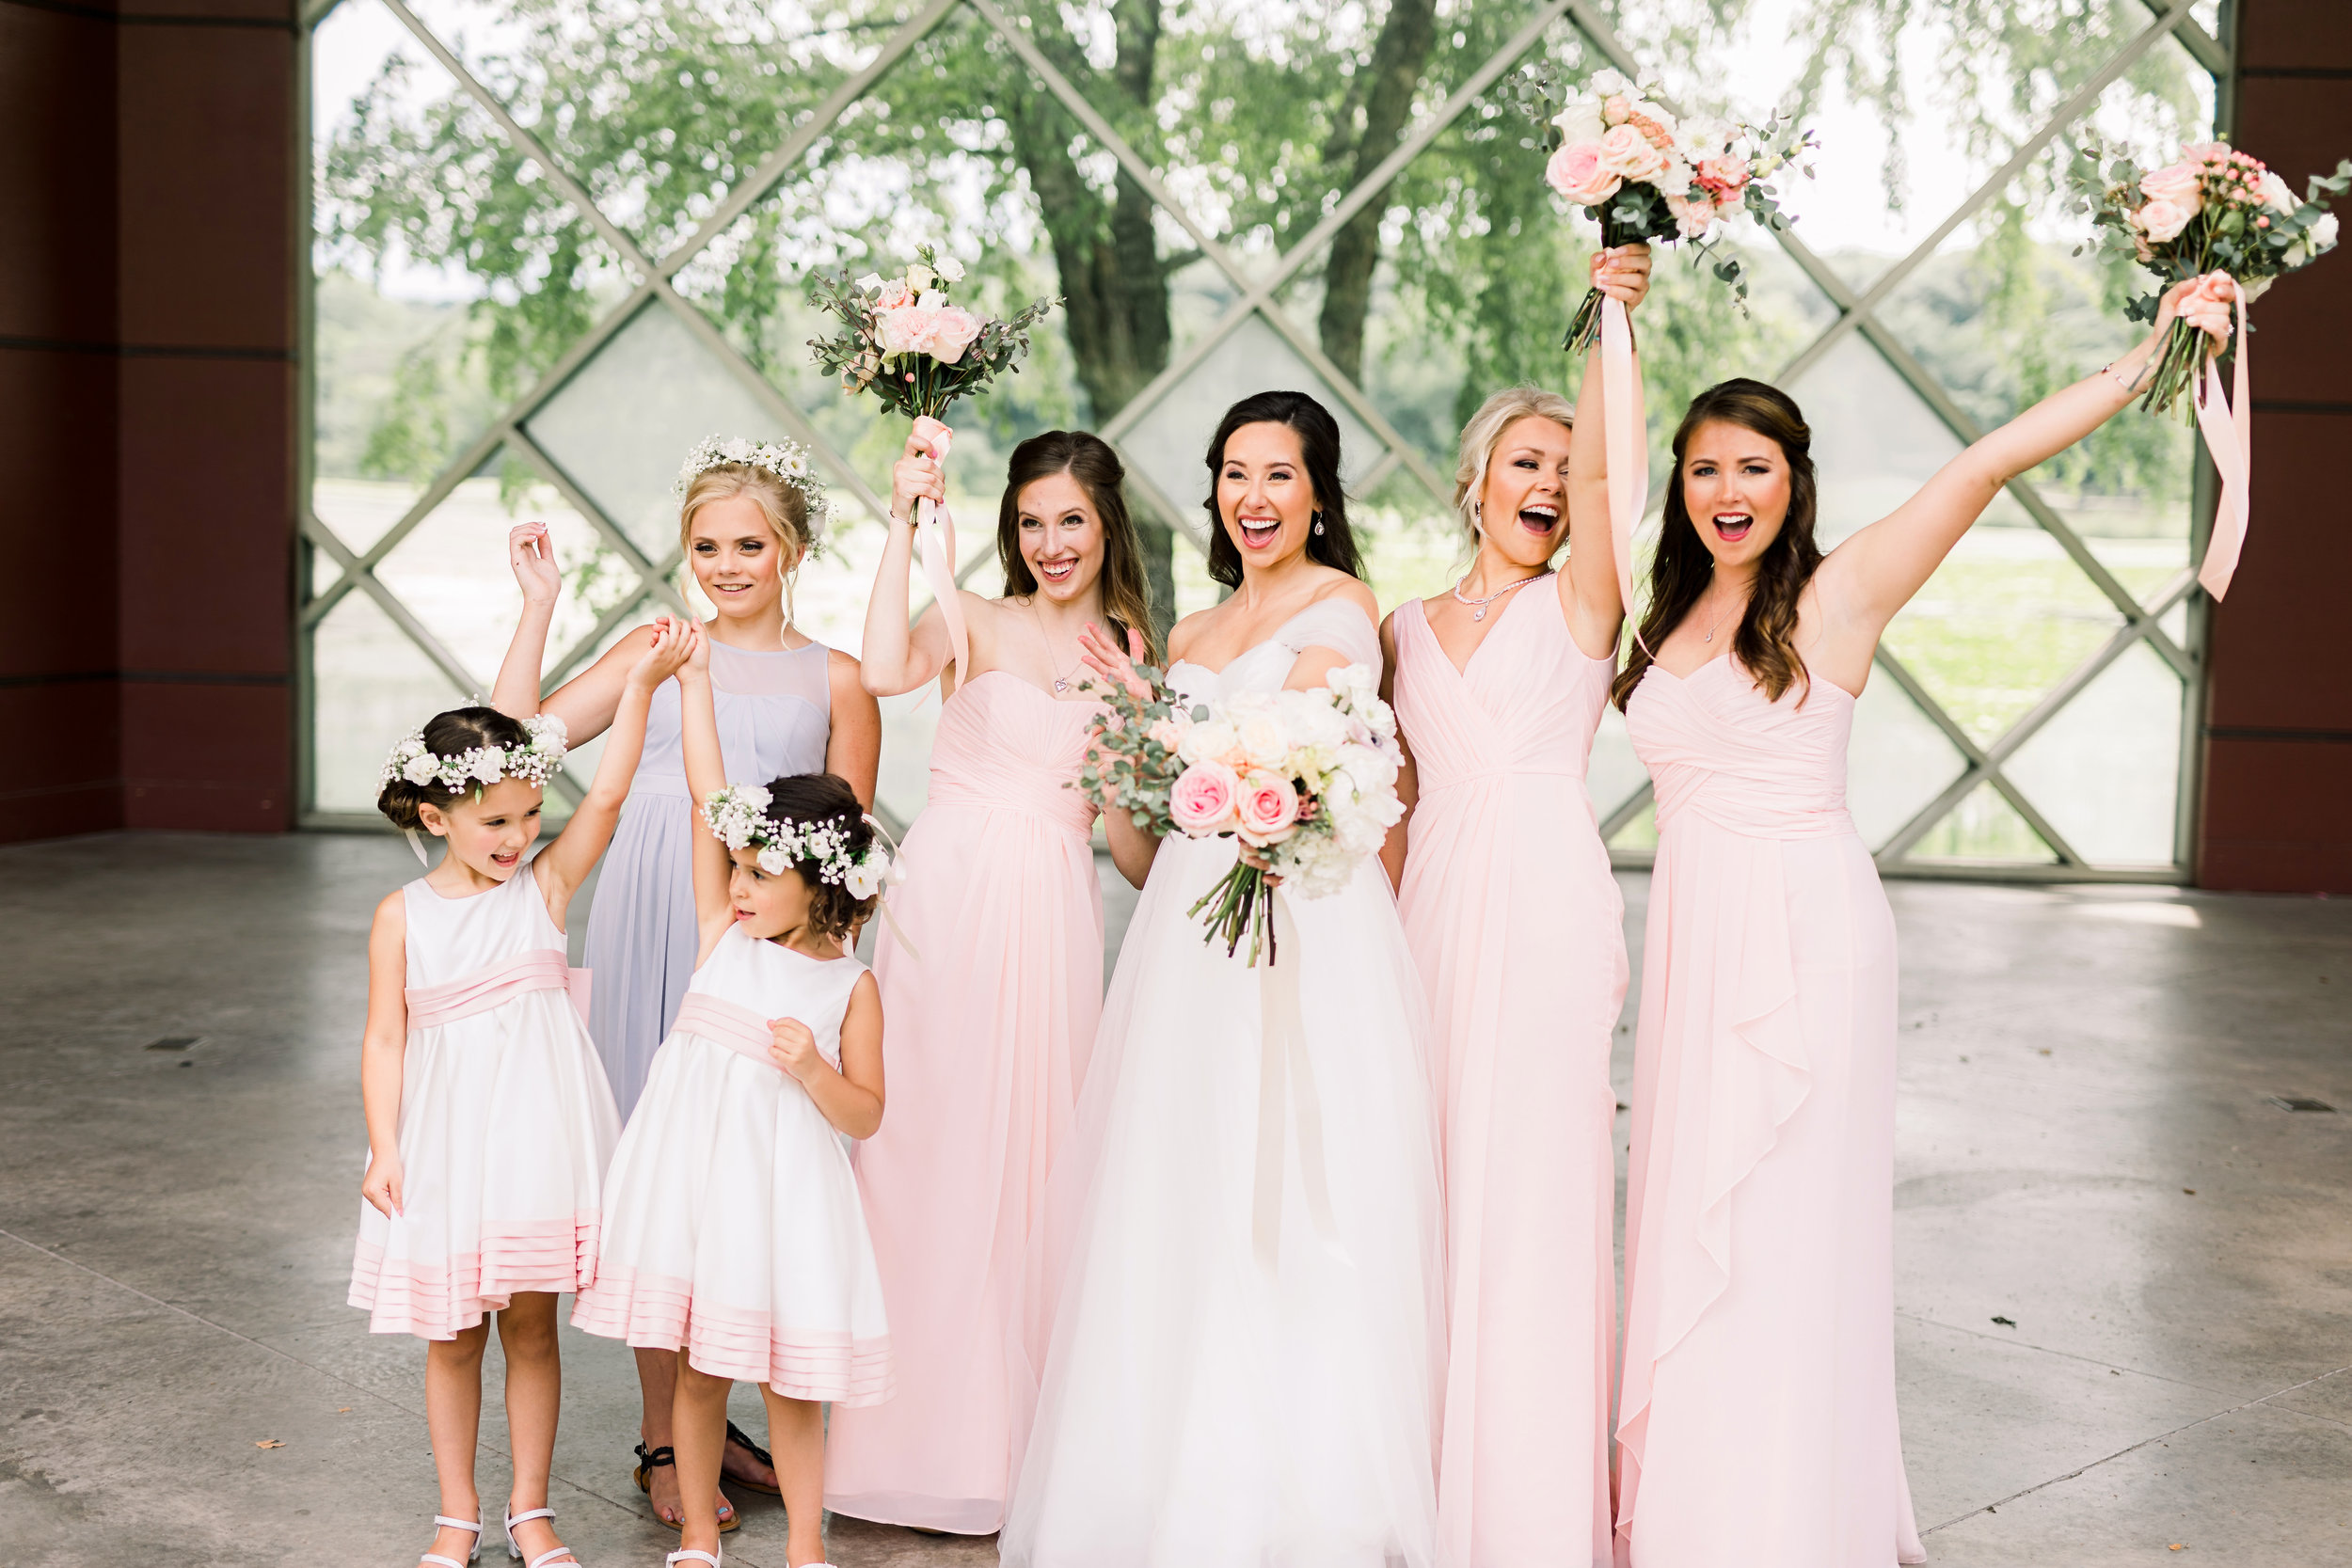 A Bride needs her Tribe. And this one is picture perfect!